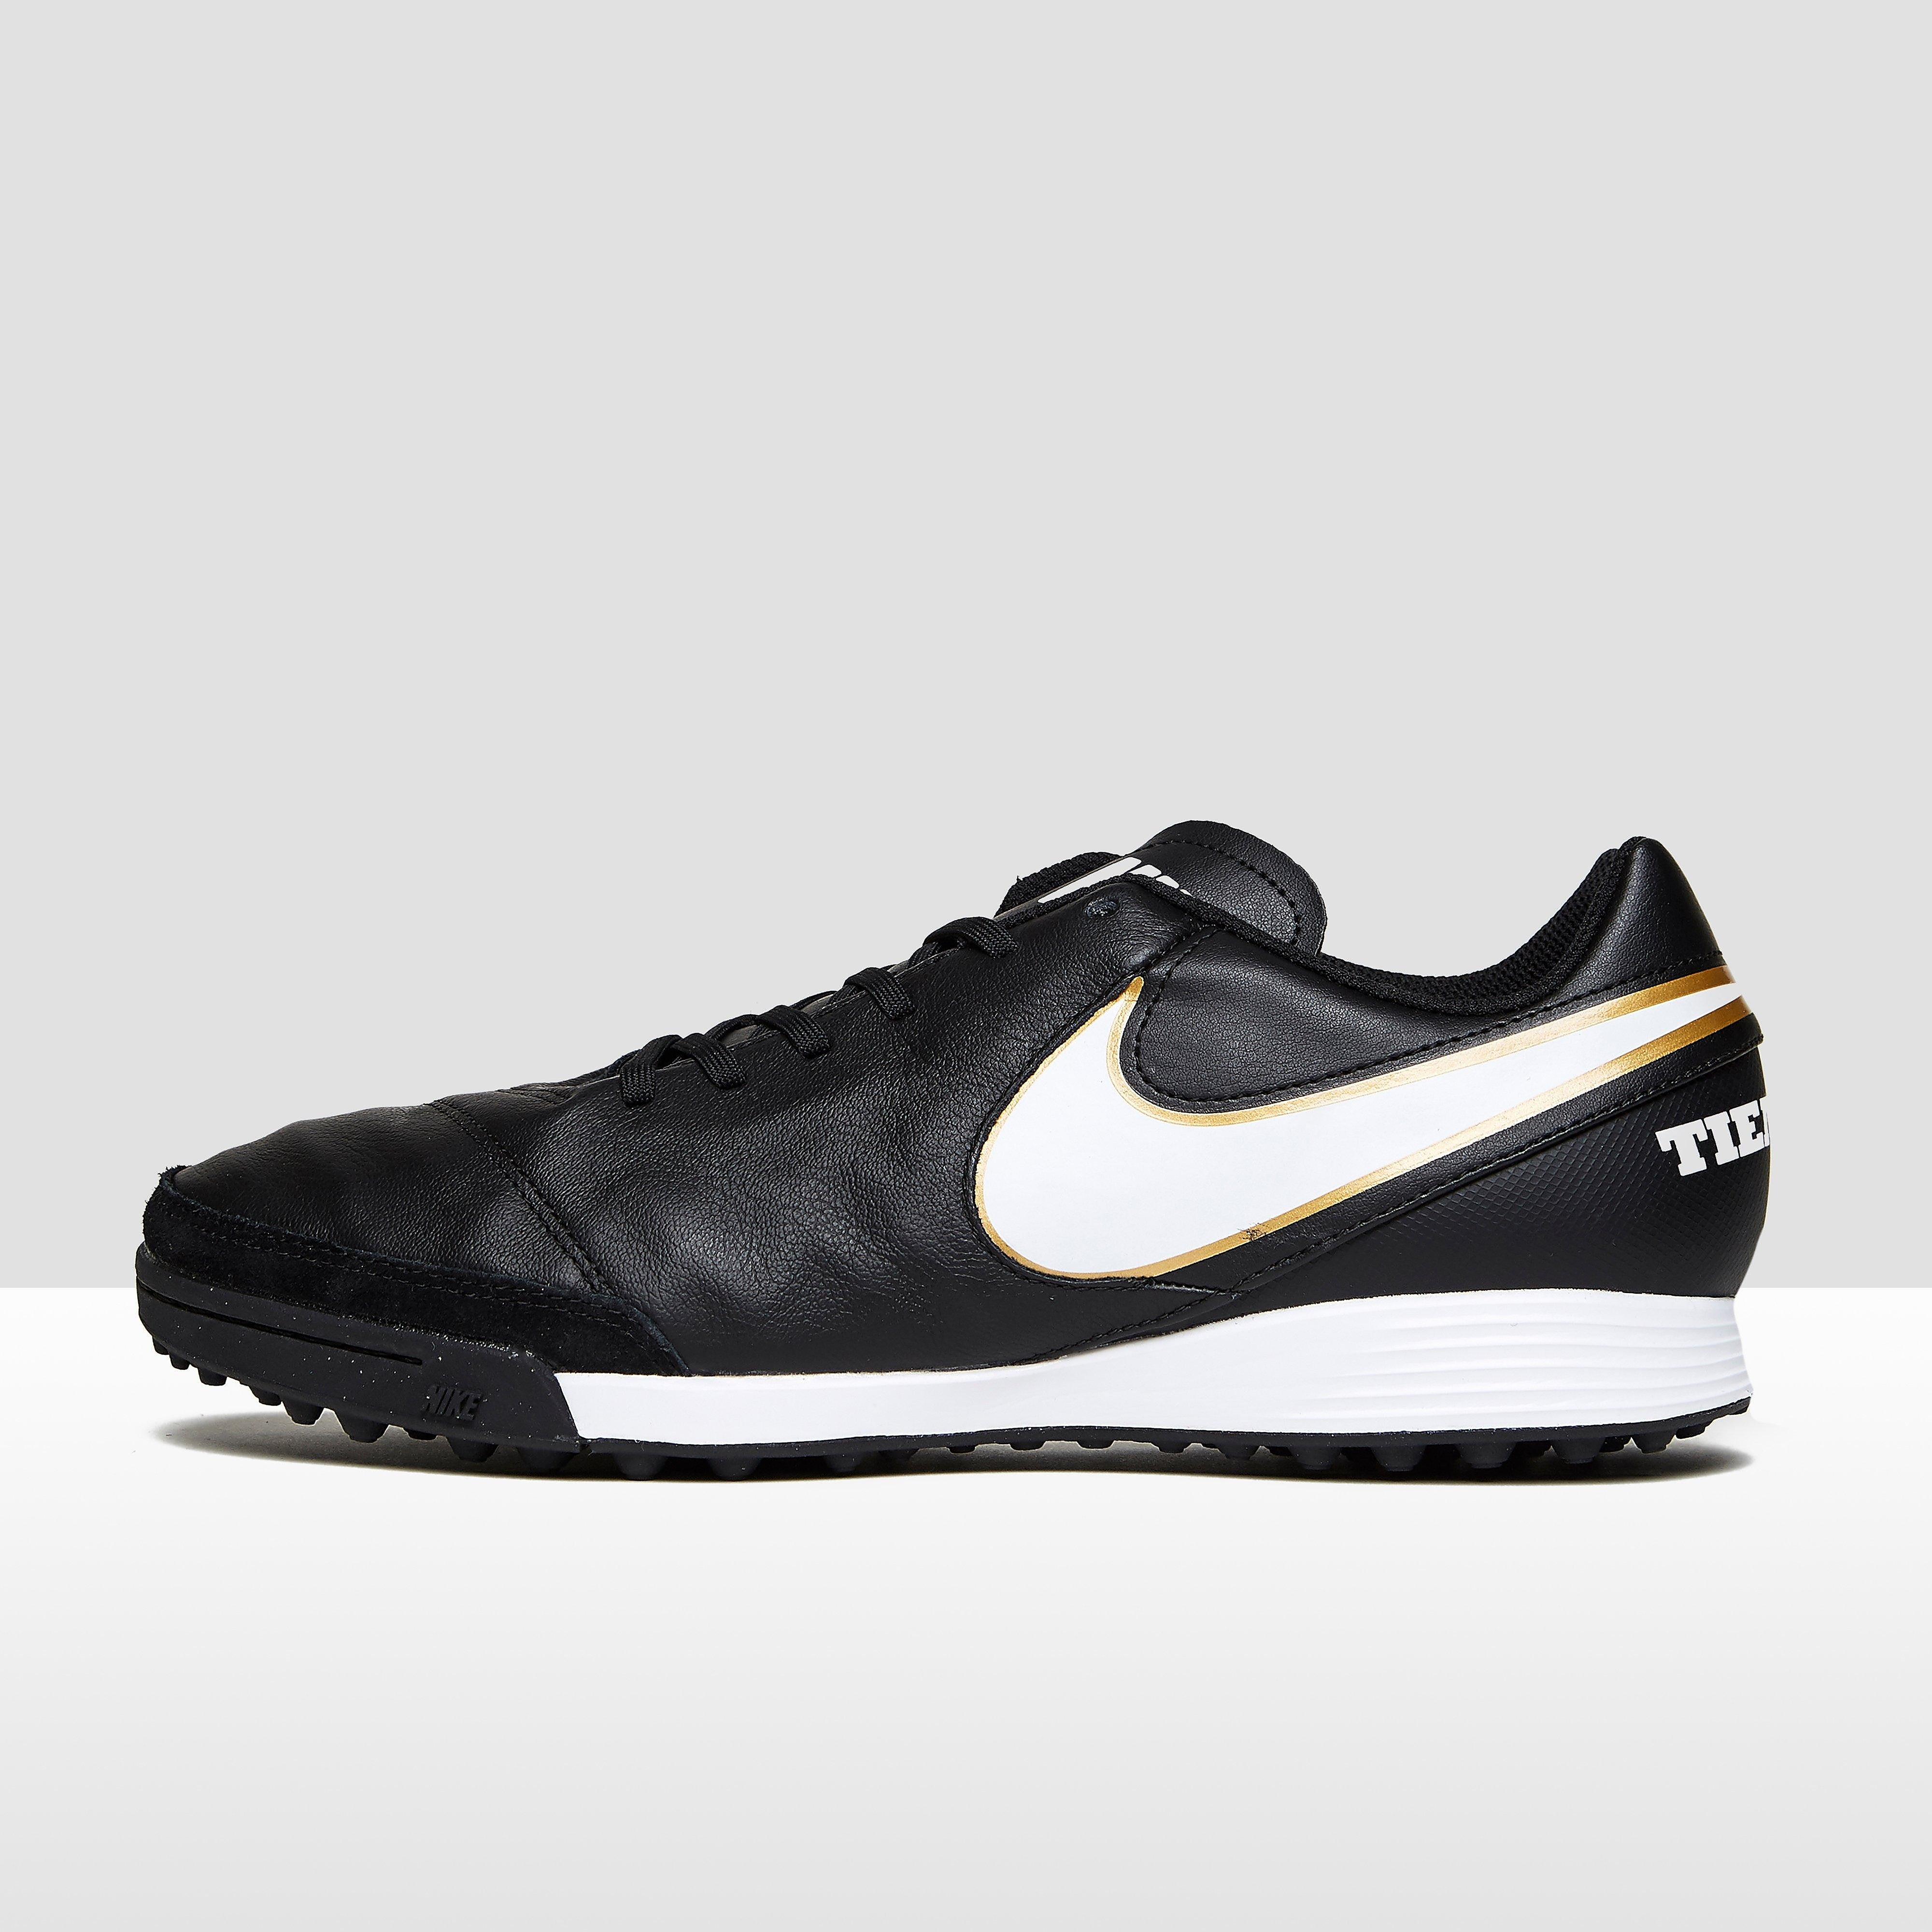 NIKE TIEMPO GENIO II LEATHER TF VOETBALSCHOENEN HEREN